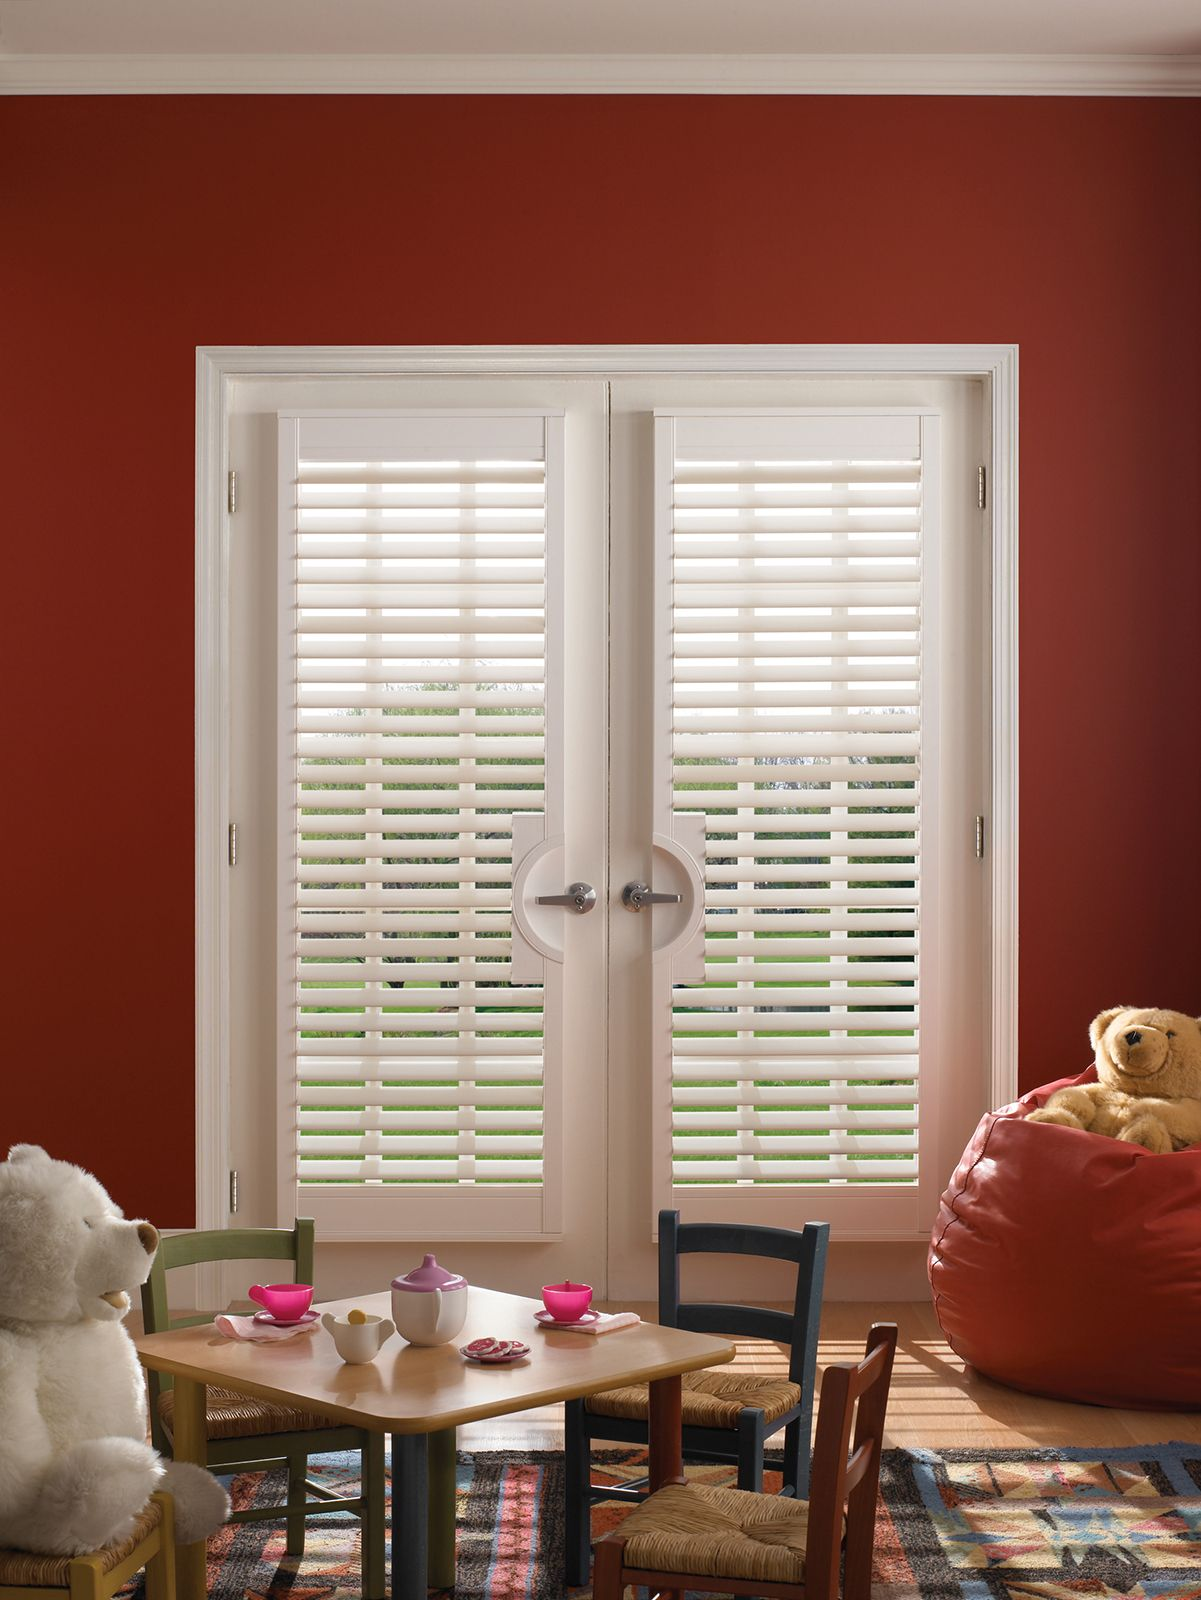 Cotton • 2½ inch louver • French Door Cut-out • Clearview® hidden rear tilt